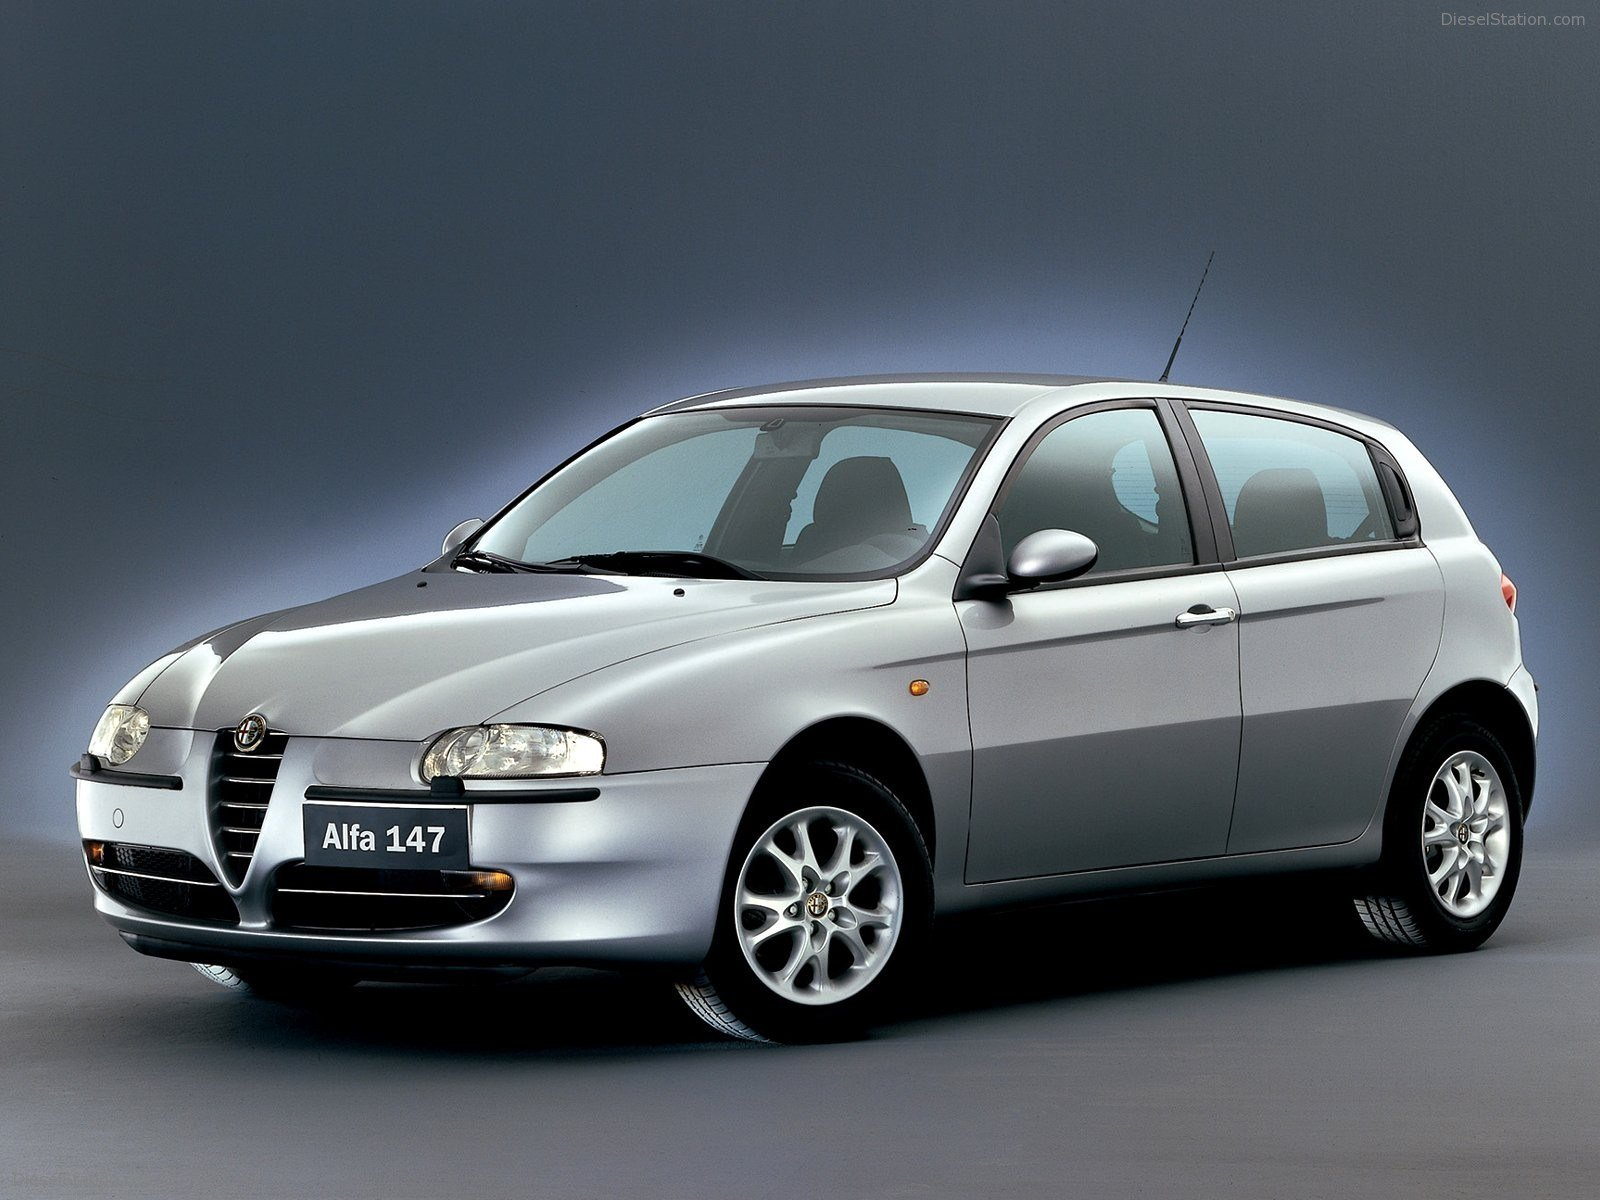 Latest Alfa Romeo 147 Exotic Car Image 004 Of 53 Diesel Station Free Download